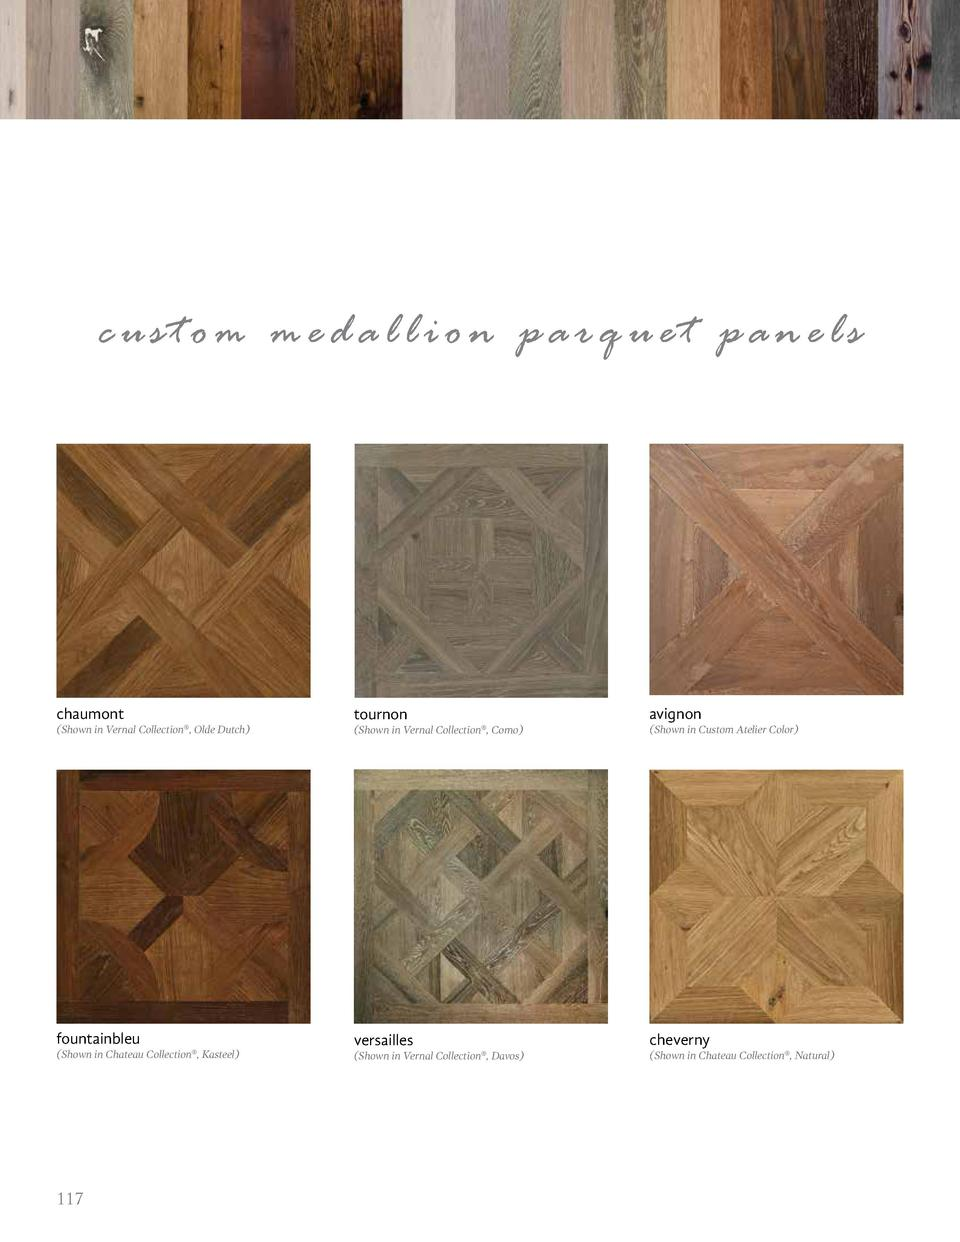 custom medallion parquet panels  chaumont  tournon  avignon   Shown in Vernal Collection  , Olde Dutch    Shown in Vernal ...